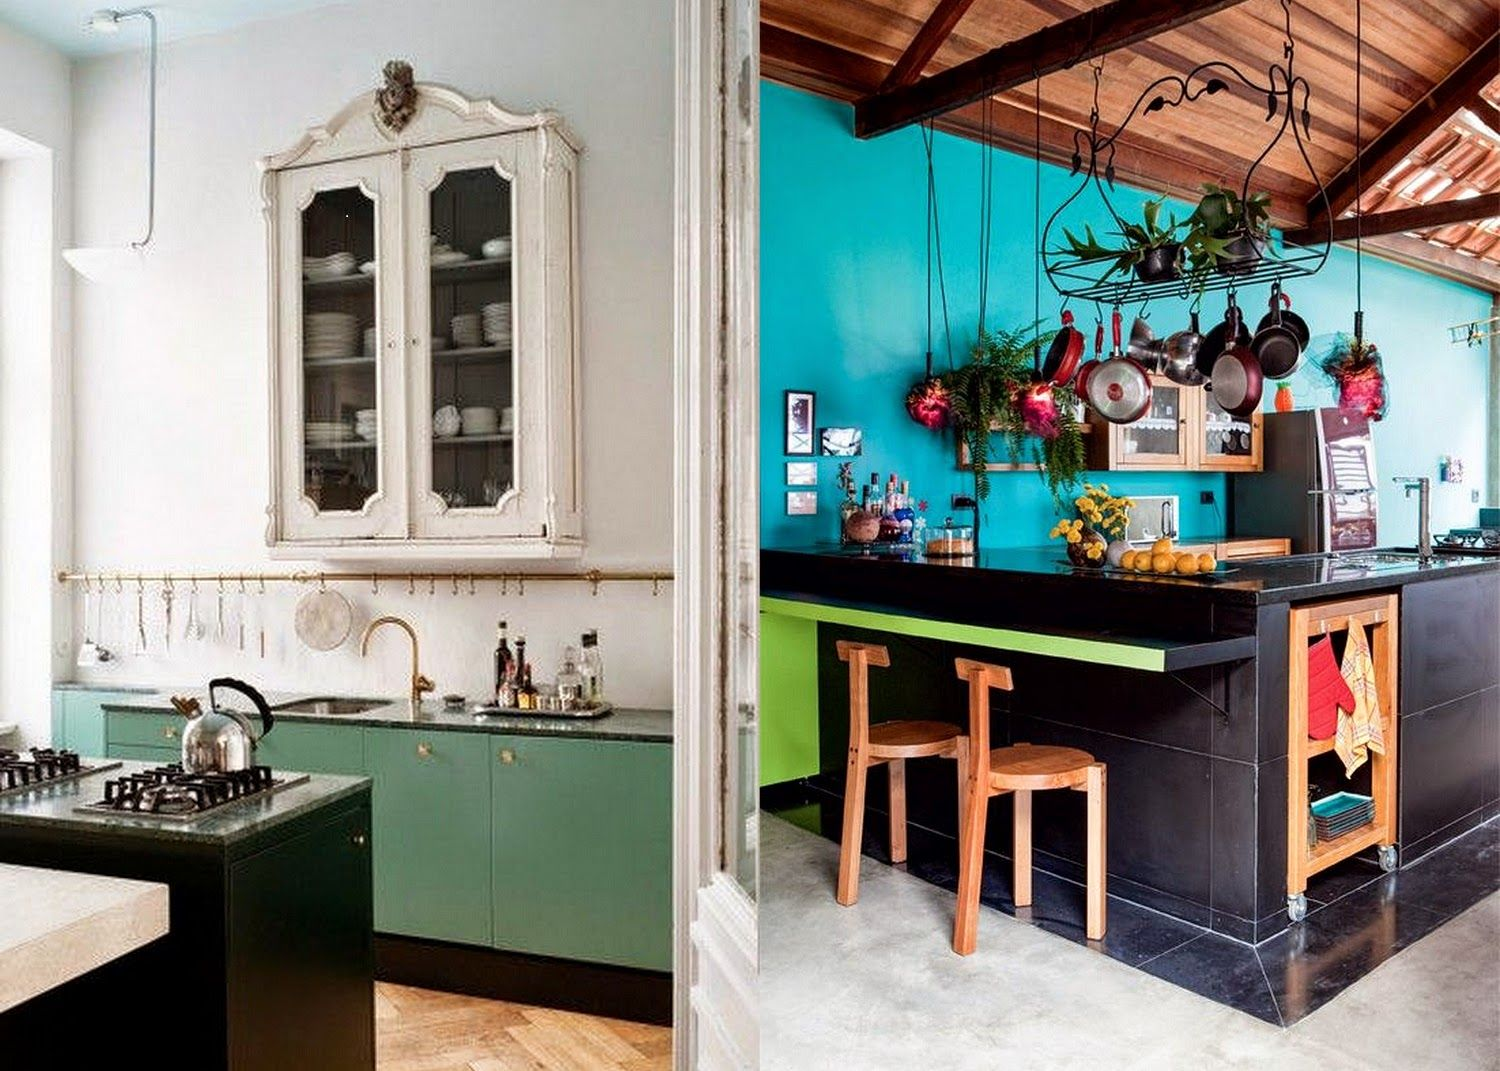 Uncategorized Bohemian Kitchen Design the modern bohemian black kitchen homeinterior pinterest kitchen